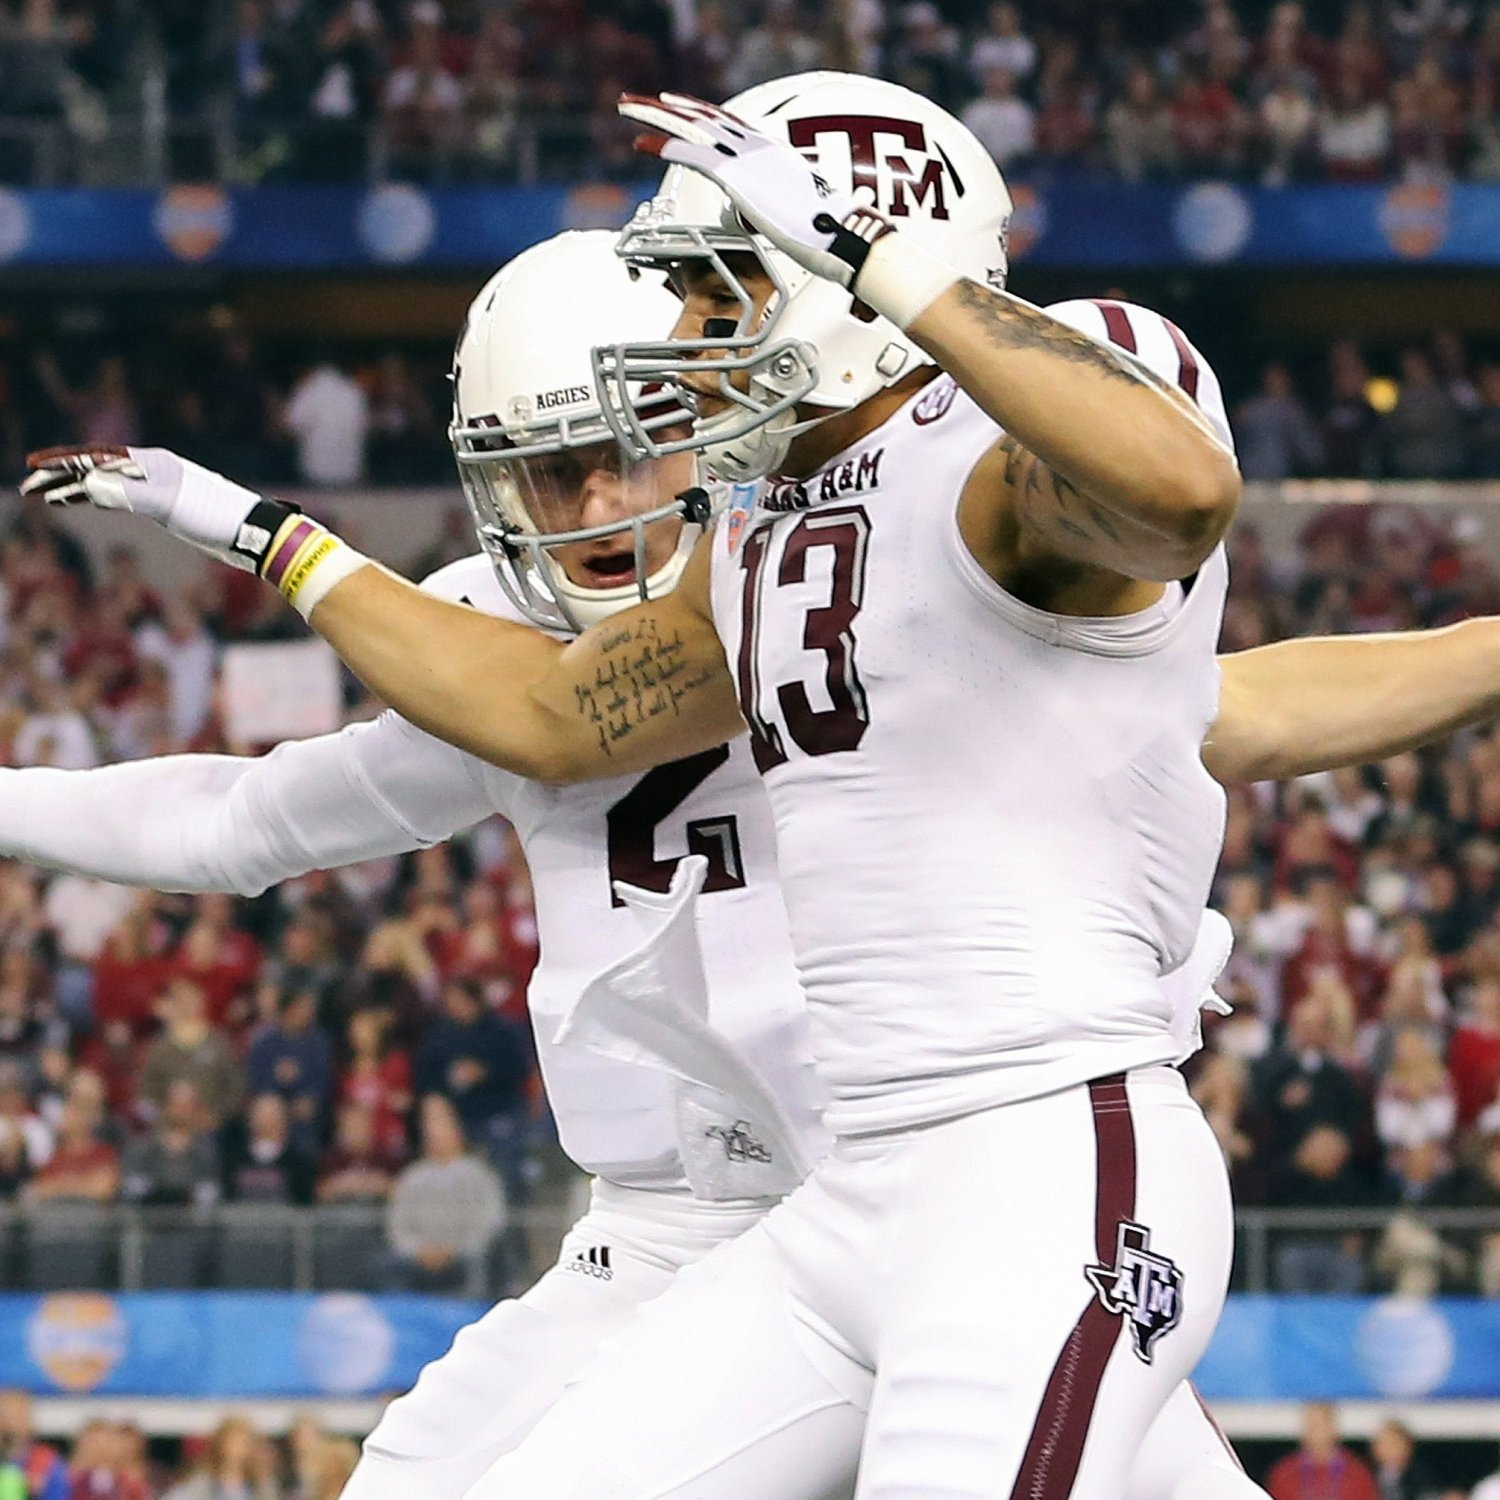 Mississippi State Vs Texas AampM Live Game Grades And